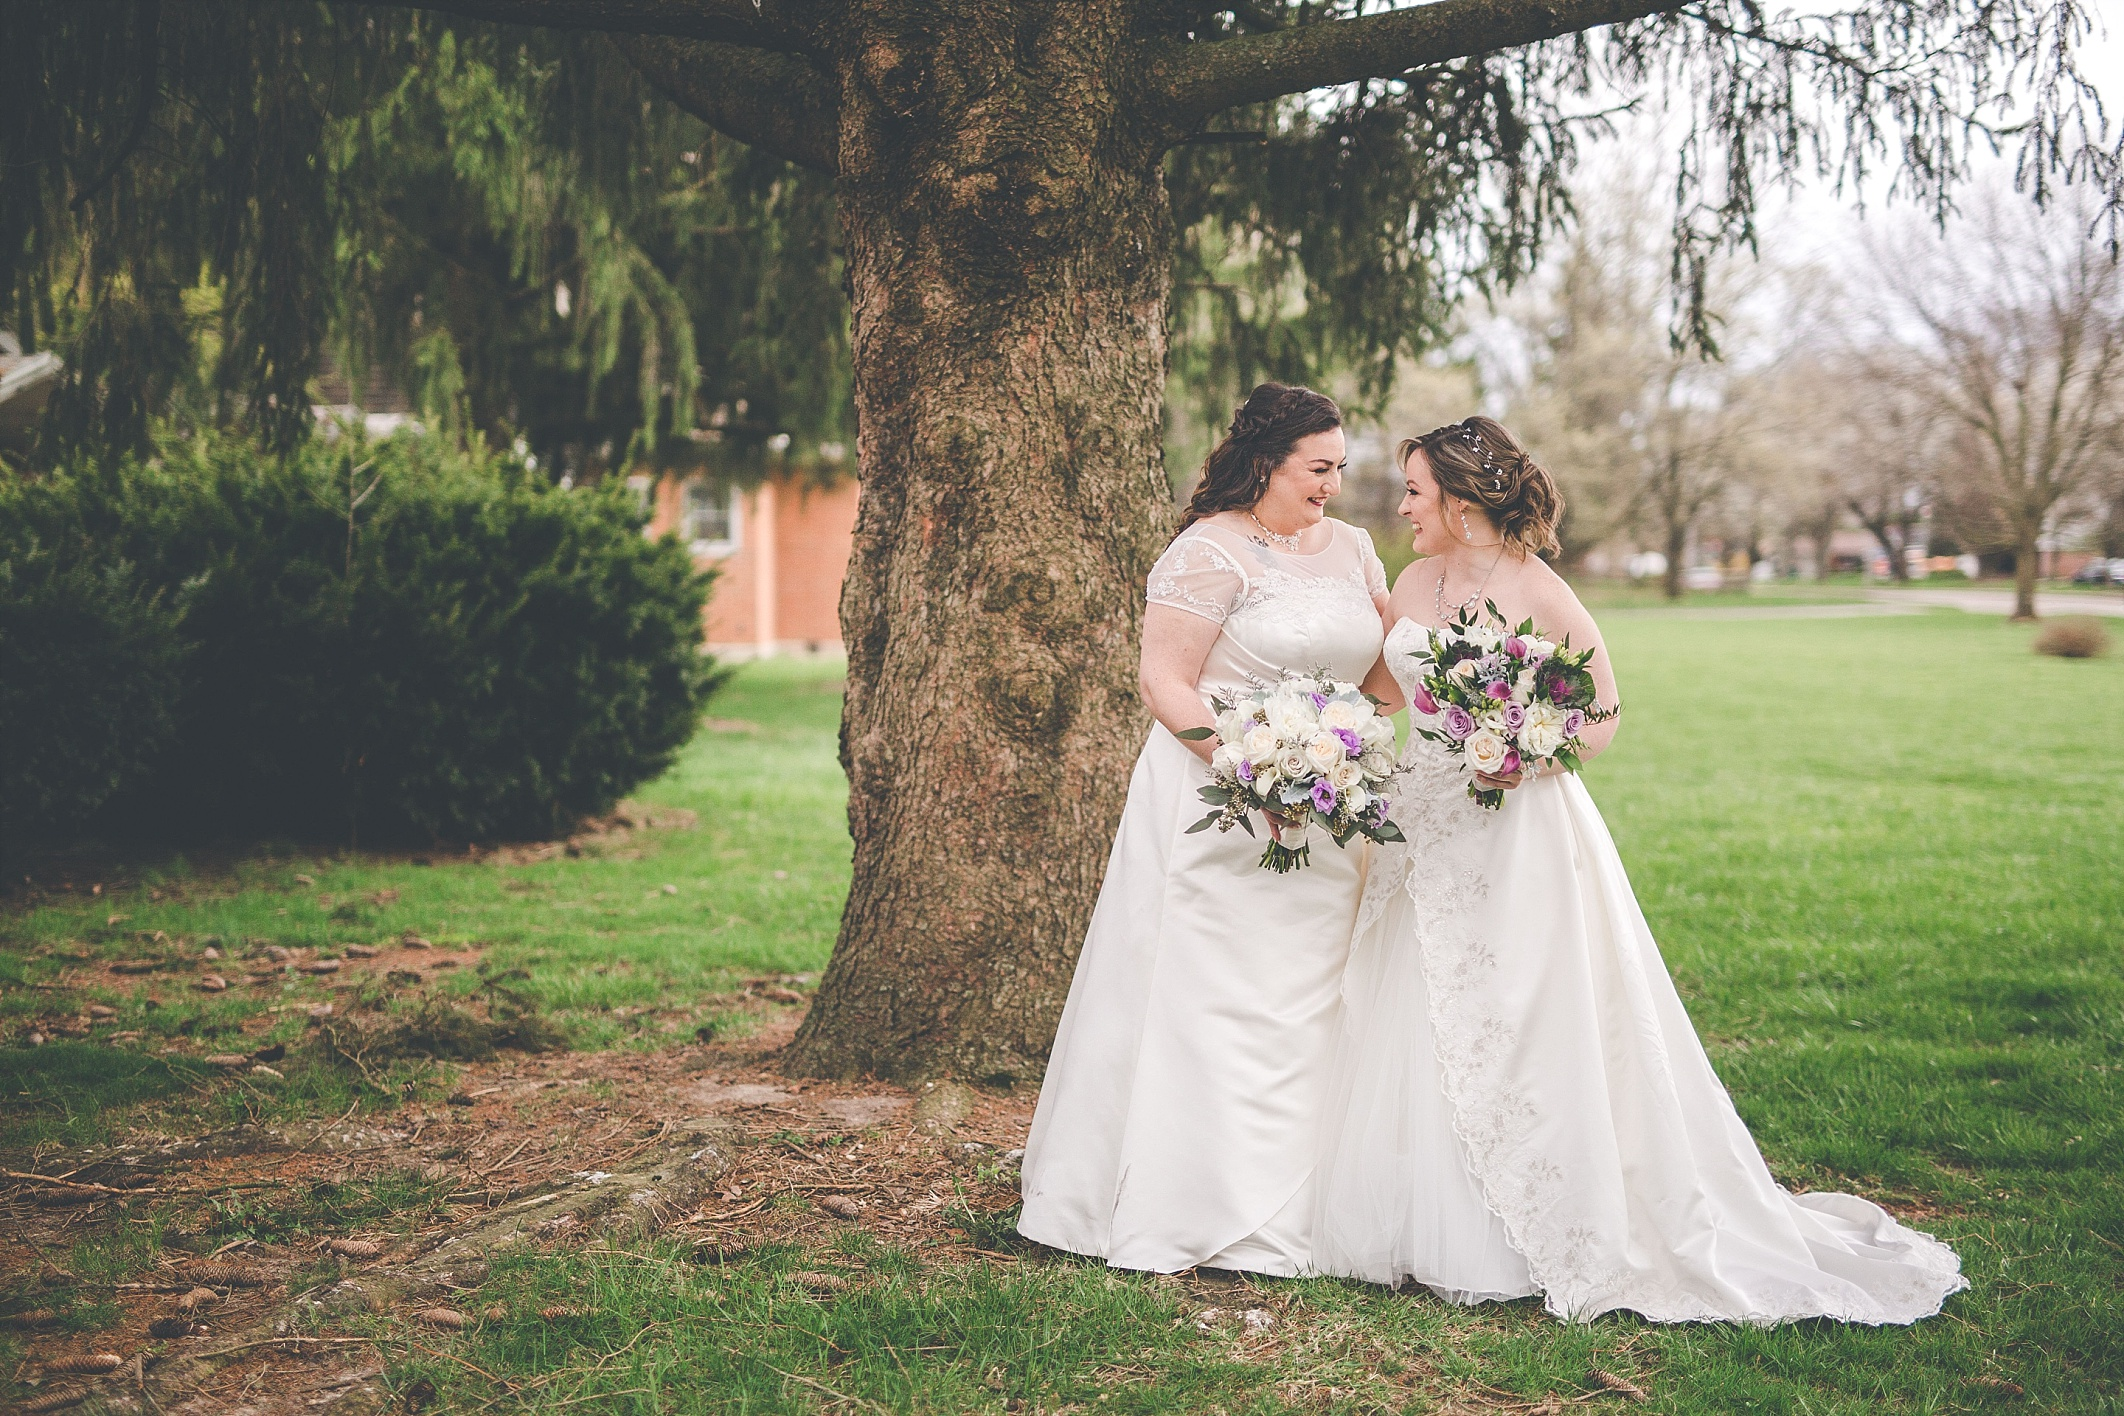 same-sex-wedding-photographer-dayton-ohio-lesbian_0001.jpg